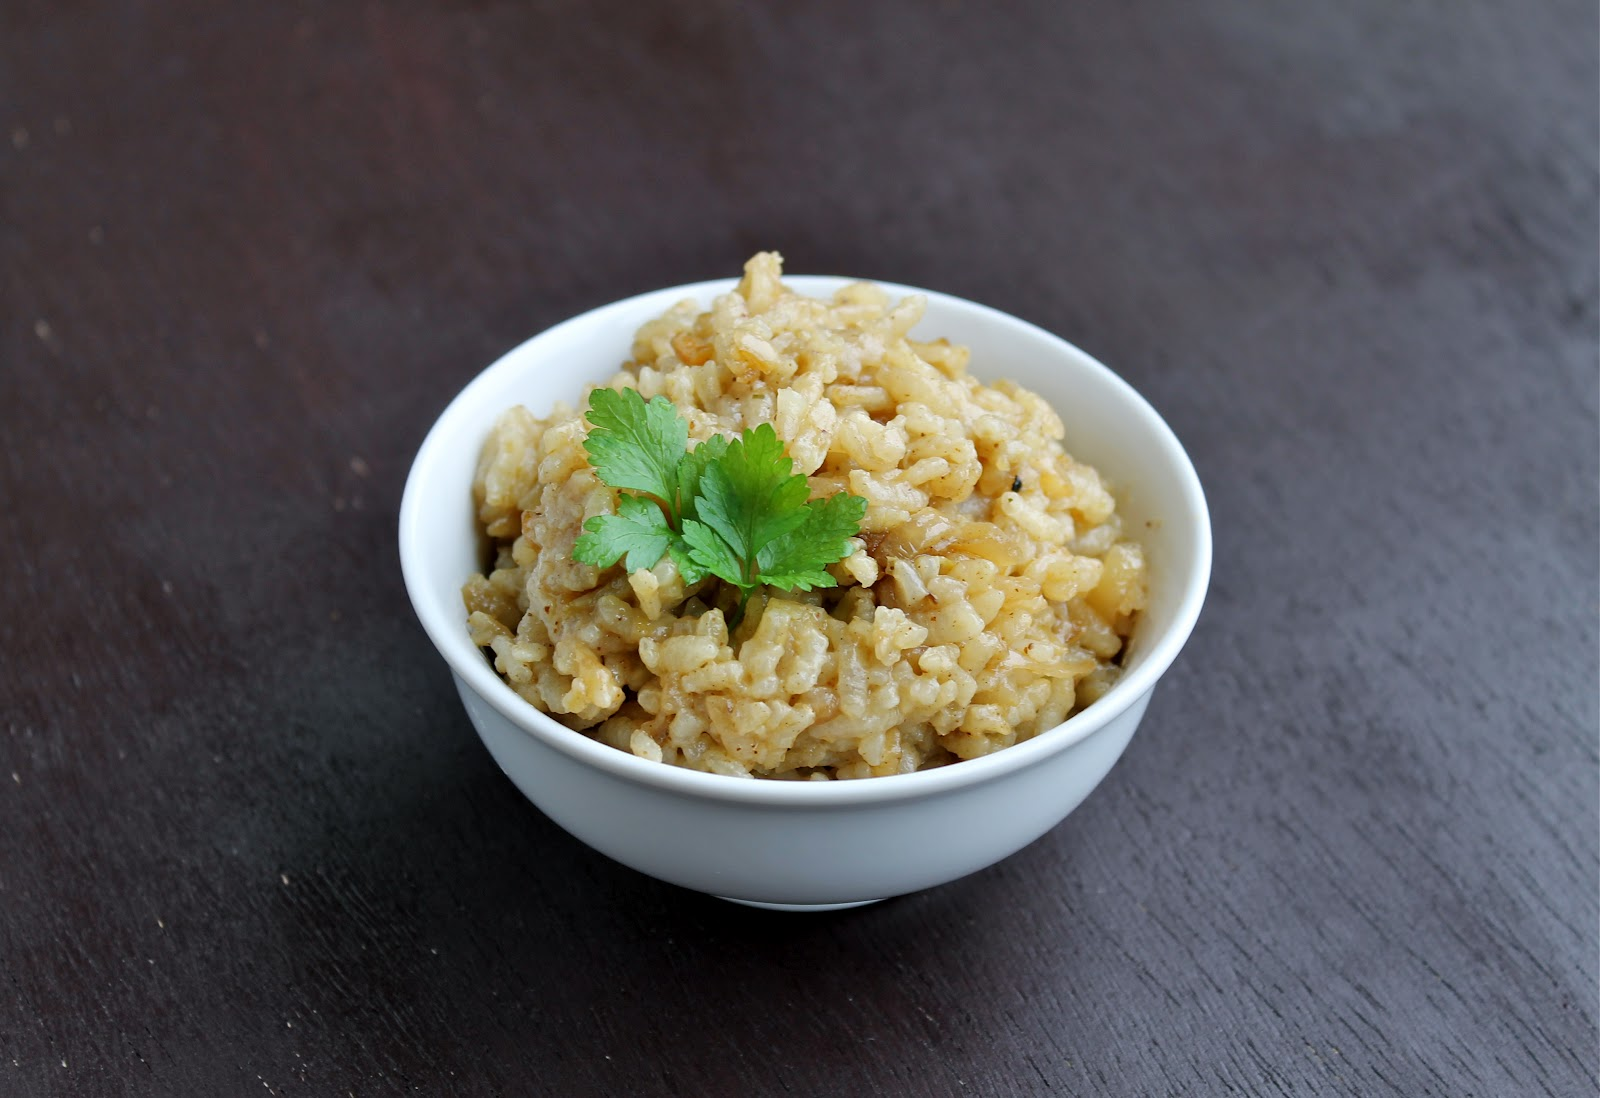 Kate's Short and Sweets: Baked Lemon Risotto - vegan & gluten free